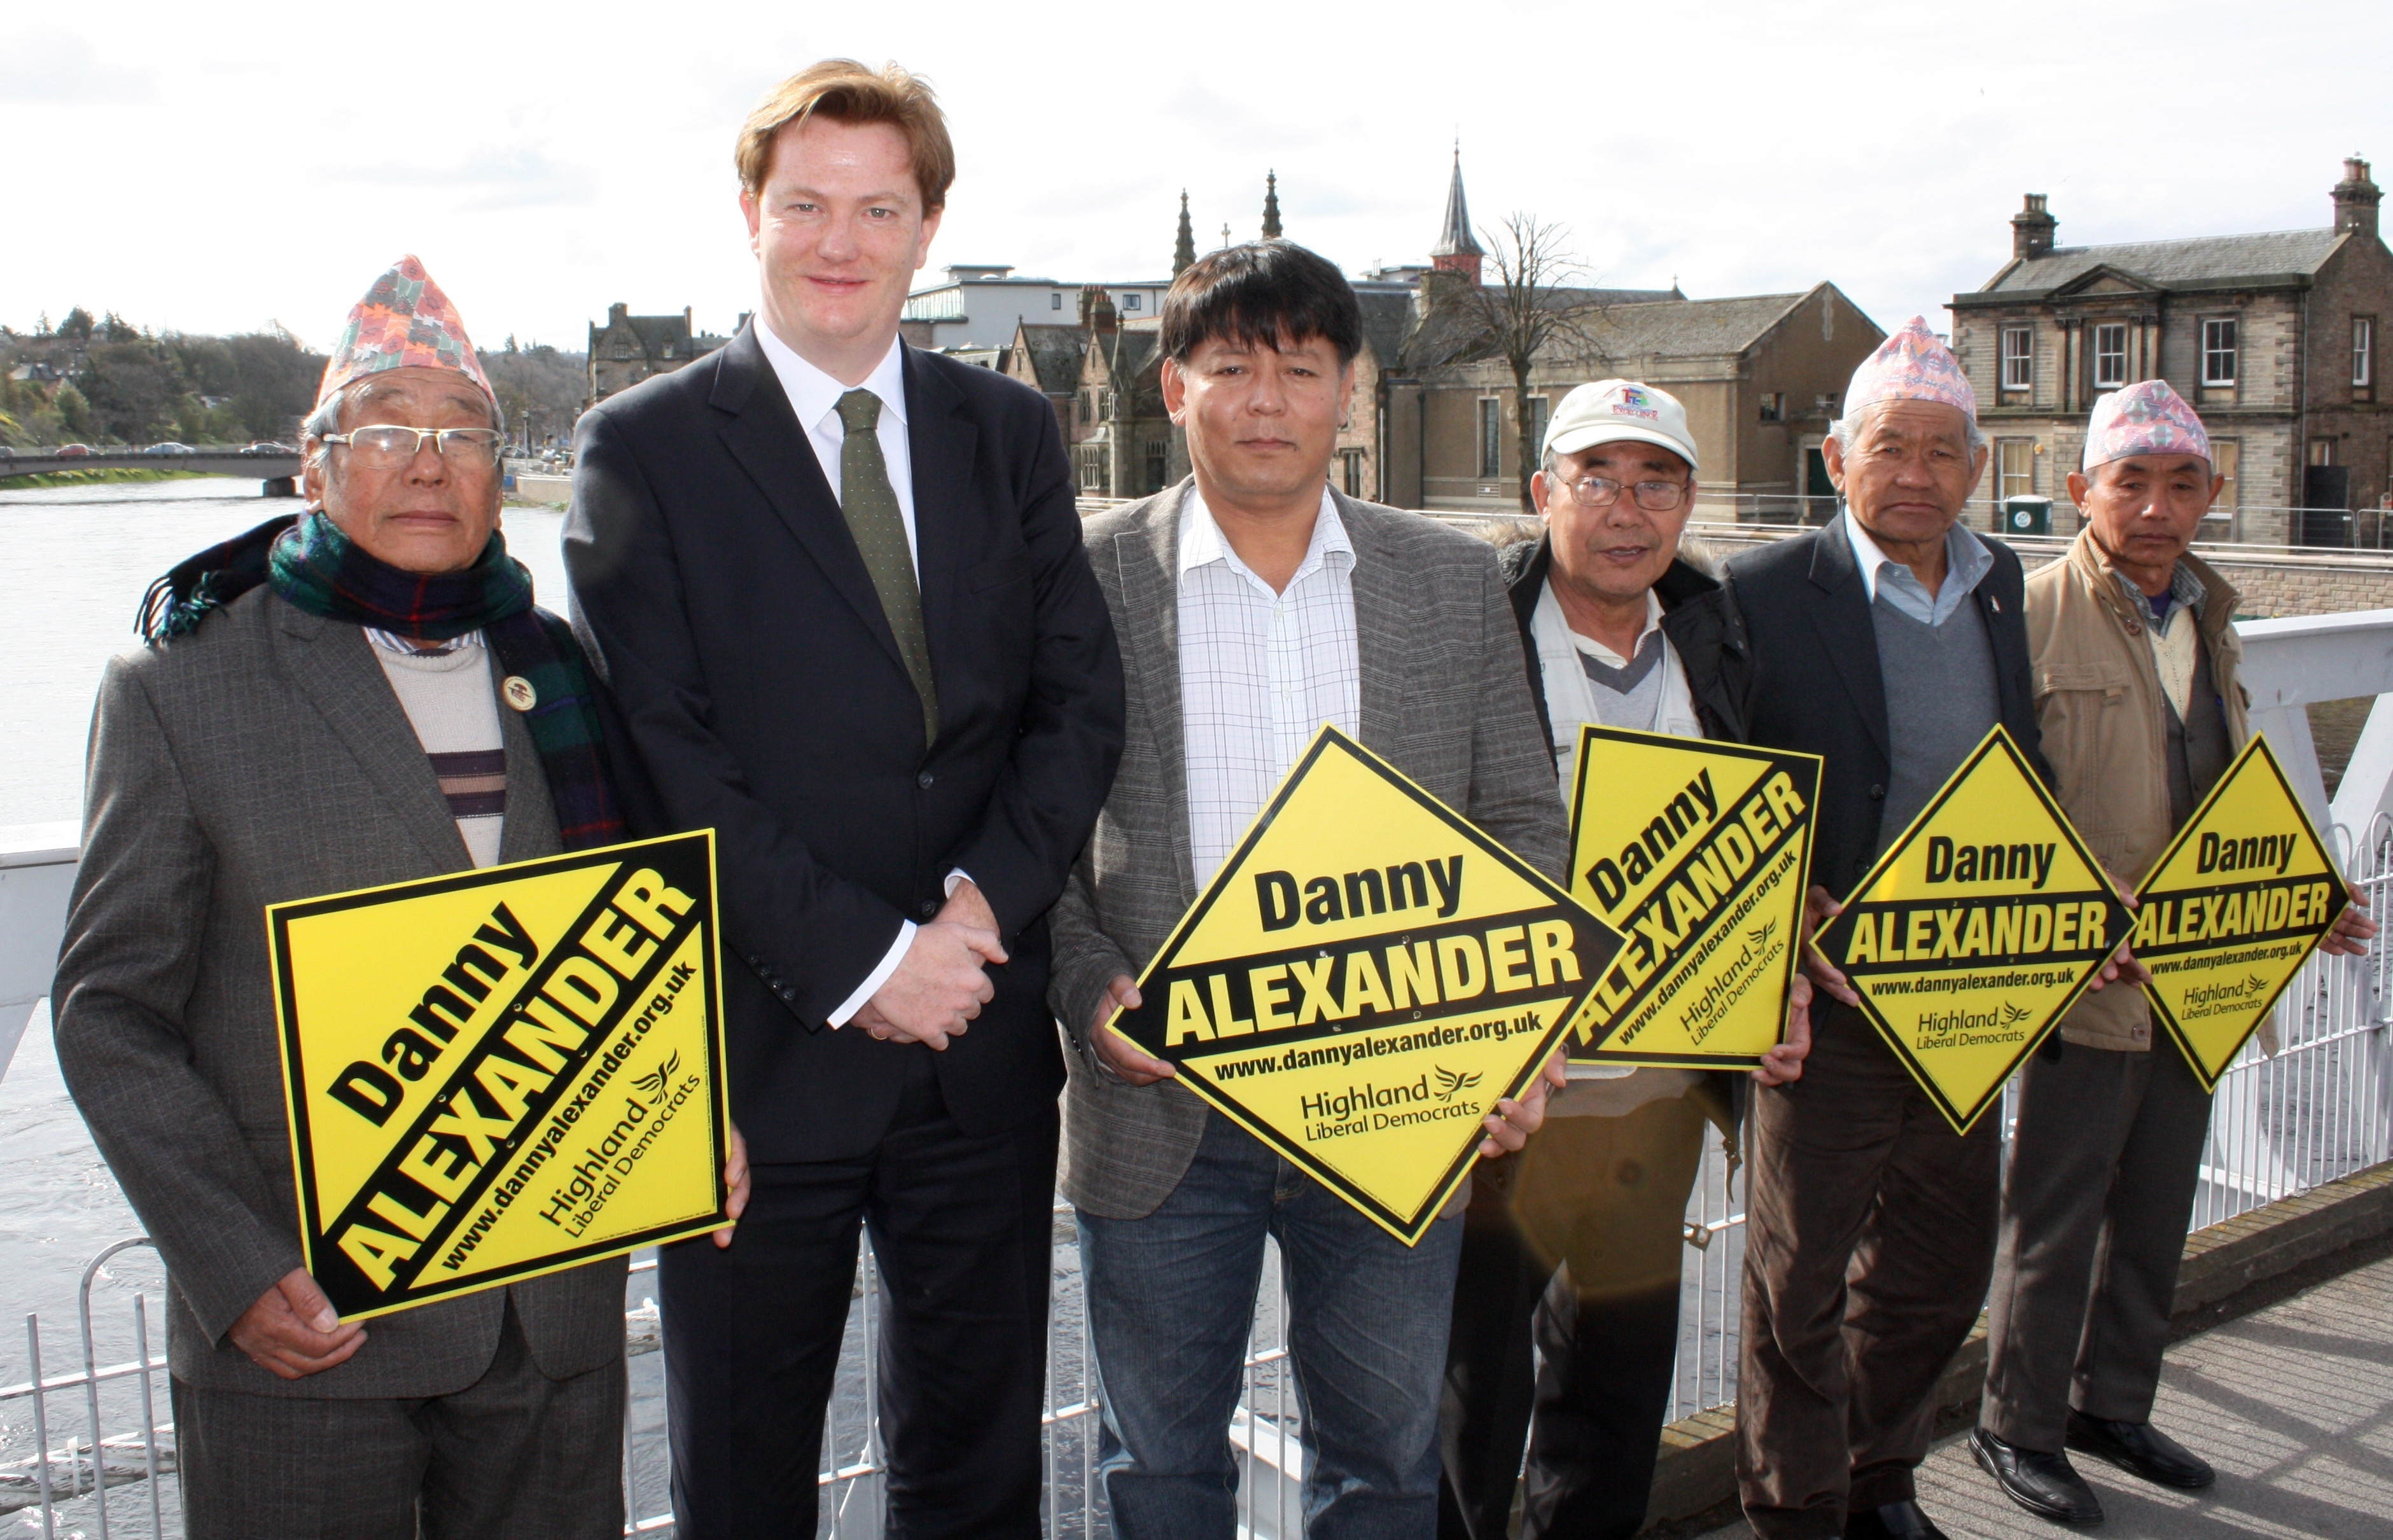 DANNY GETS BACKING OF GURKHAS AFTER ROLE IN JUSTICE CAMPAIGN